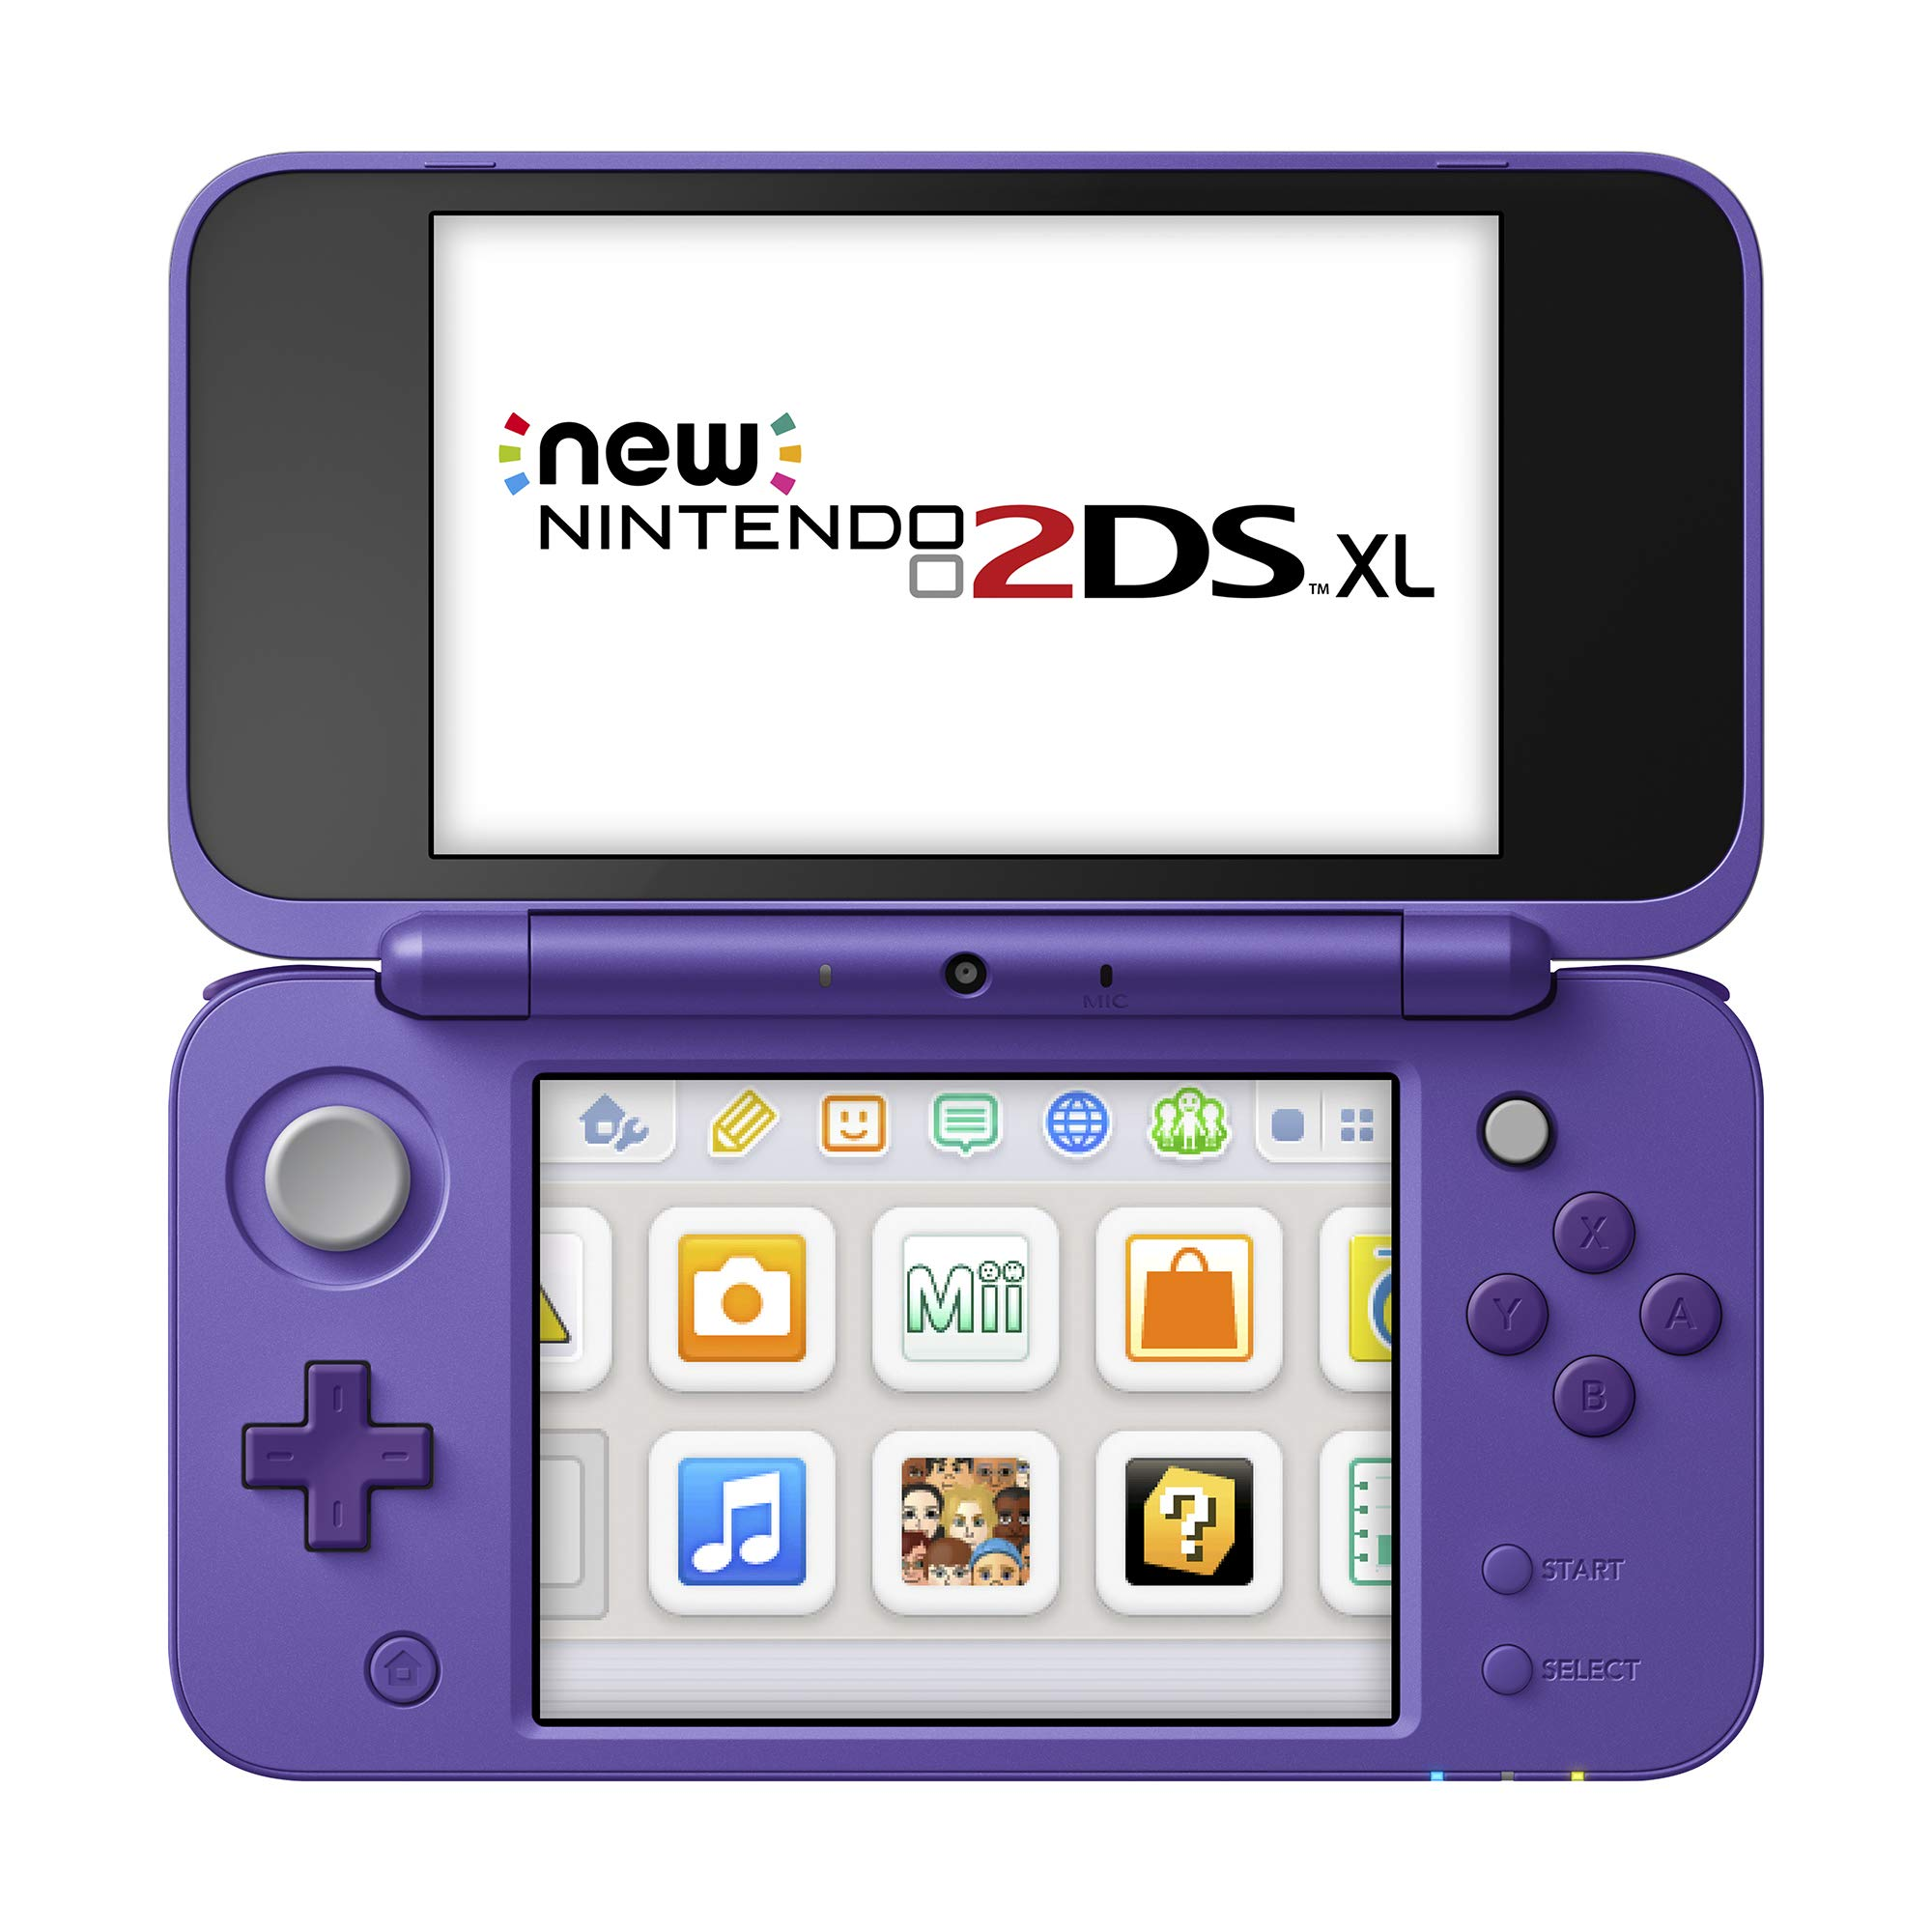 New Nintendo 2DS XL - Purple + Silver With Mario Kart 7 Pre-installed - Nintendo 2DS by Nintendo (Image #3)